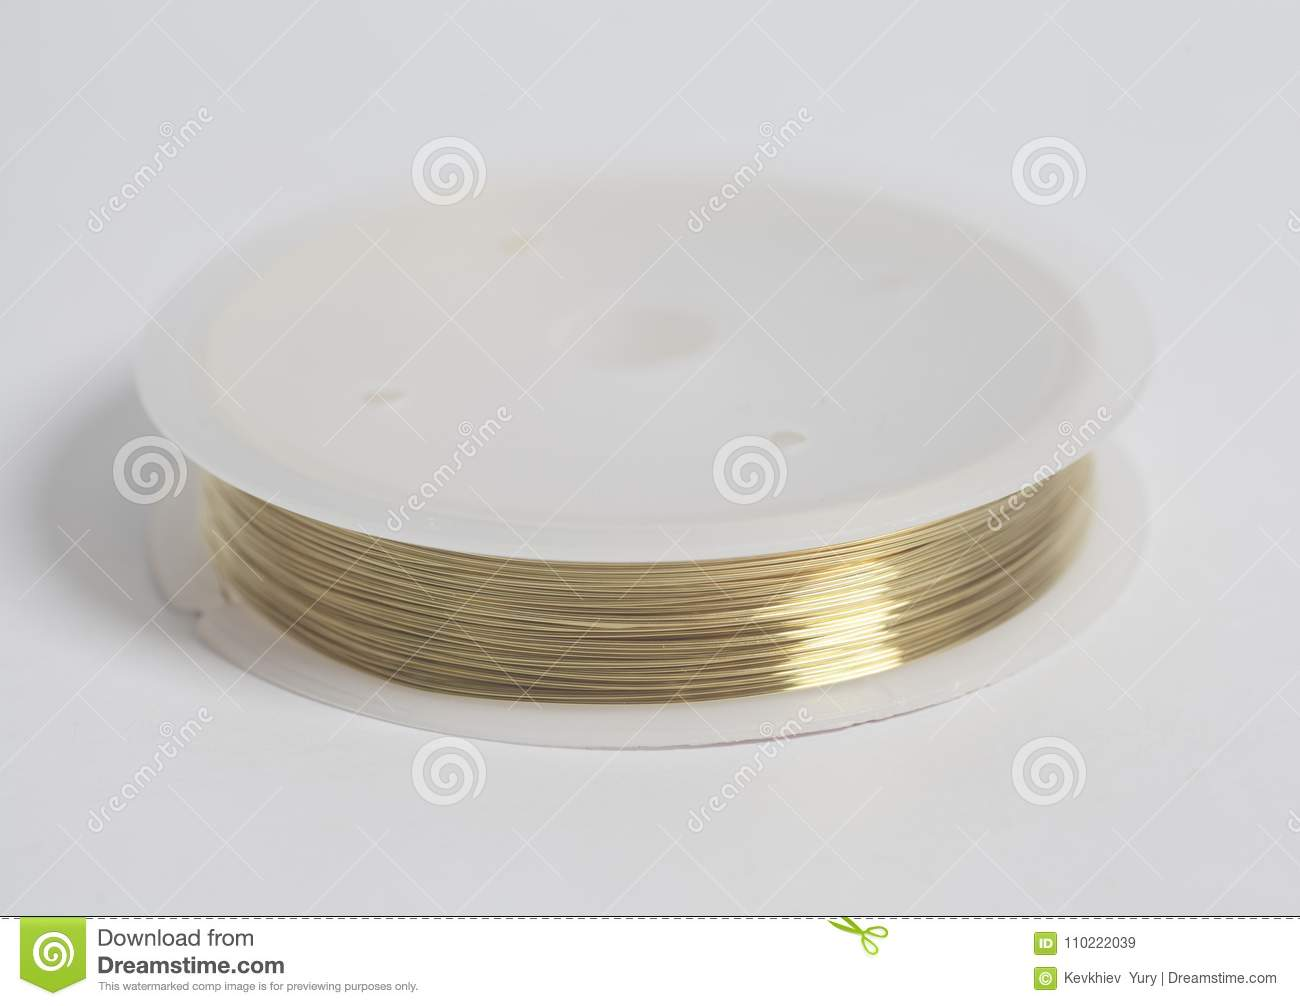 Copper wire on spool stock image. Image of roll, reflection - 110222039